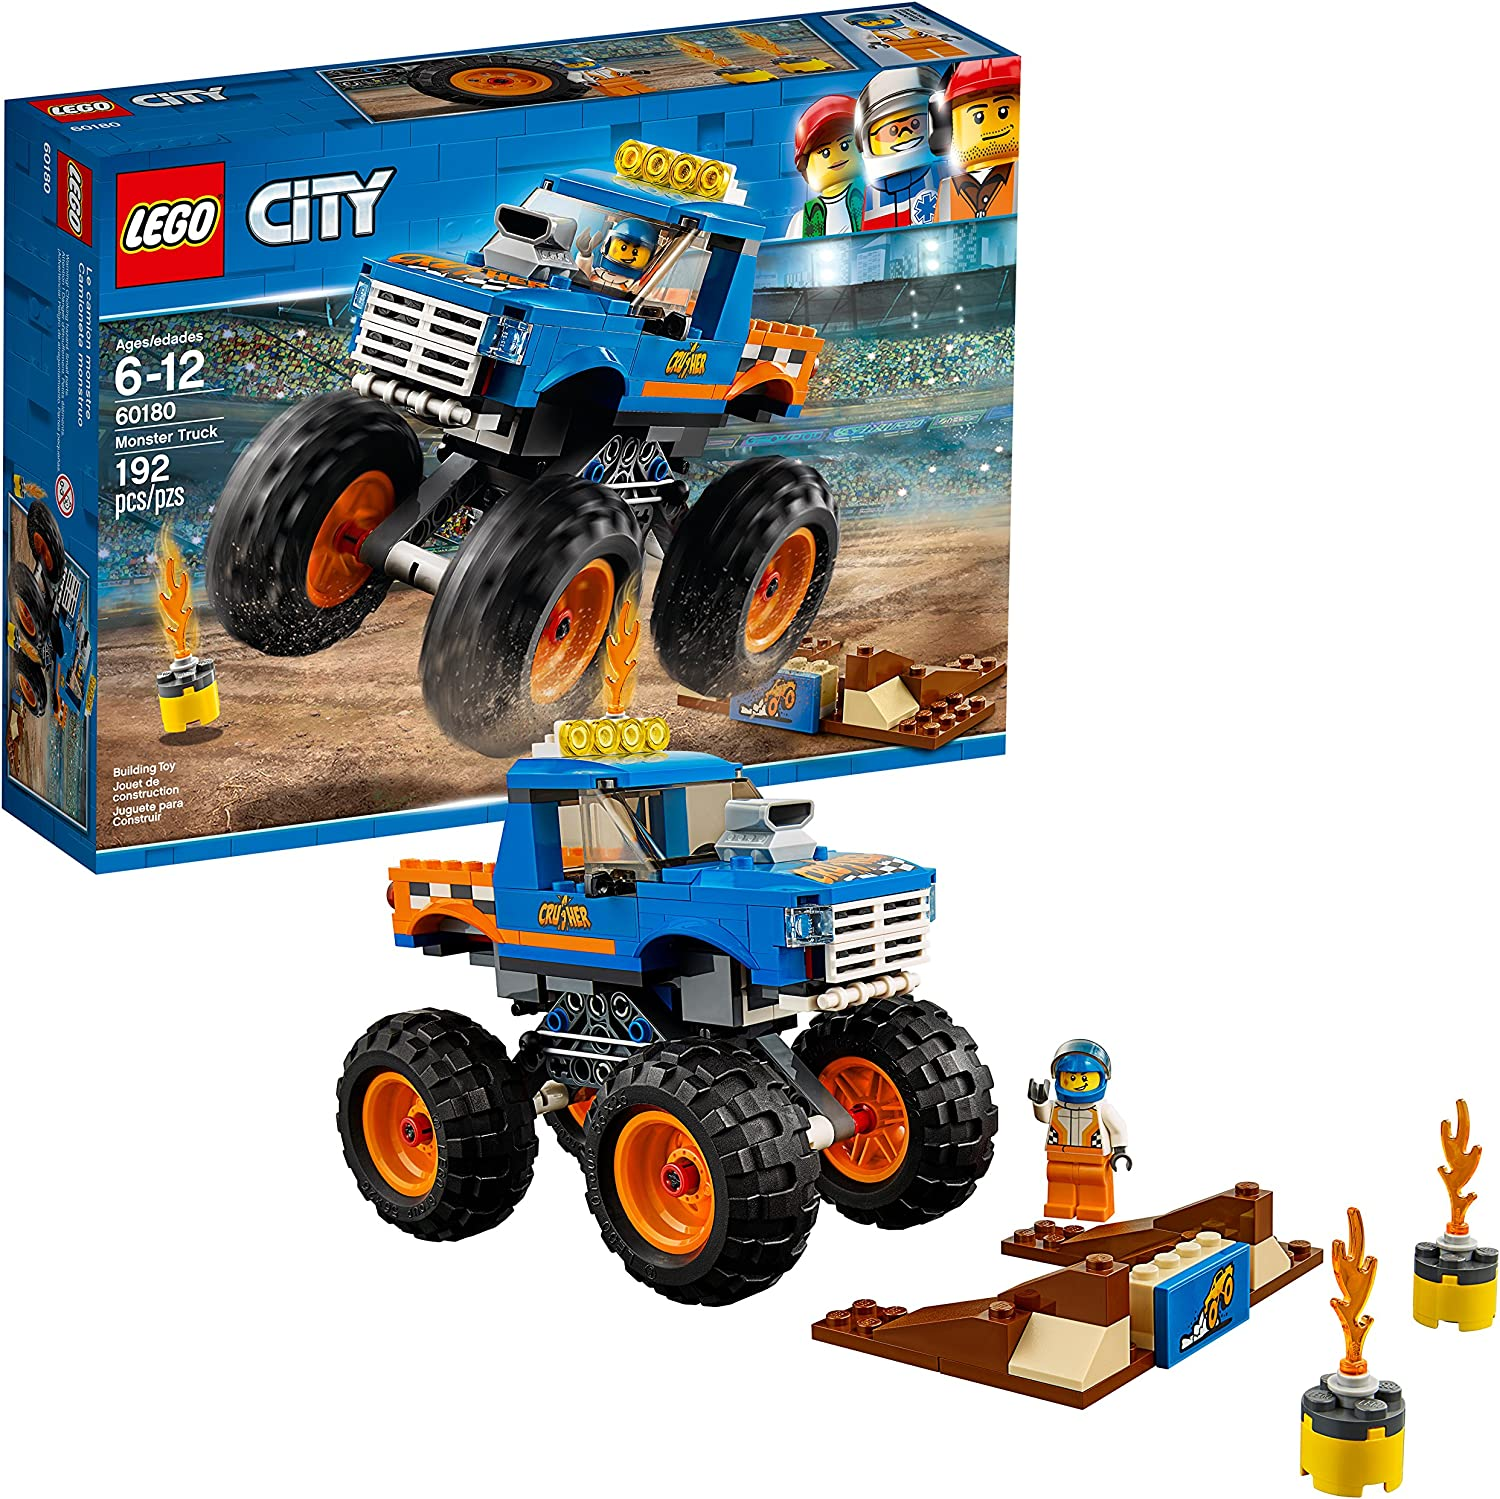 Amazon Com Lego City Monster Truck 60180 Building Kit 192 Pieces Discontinued By Manufacturer Toys Games